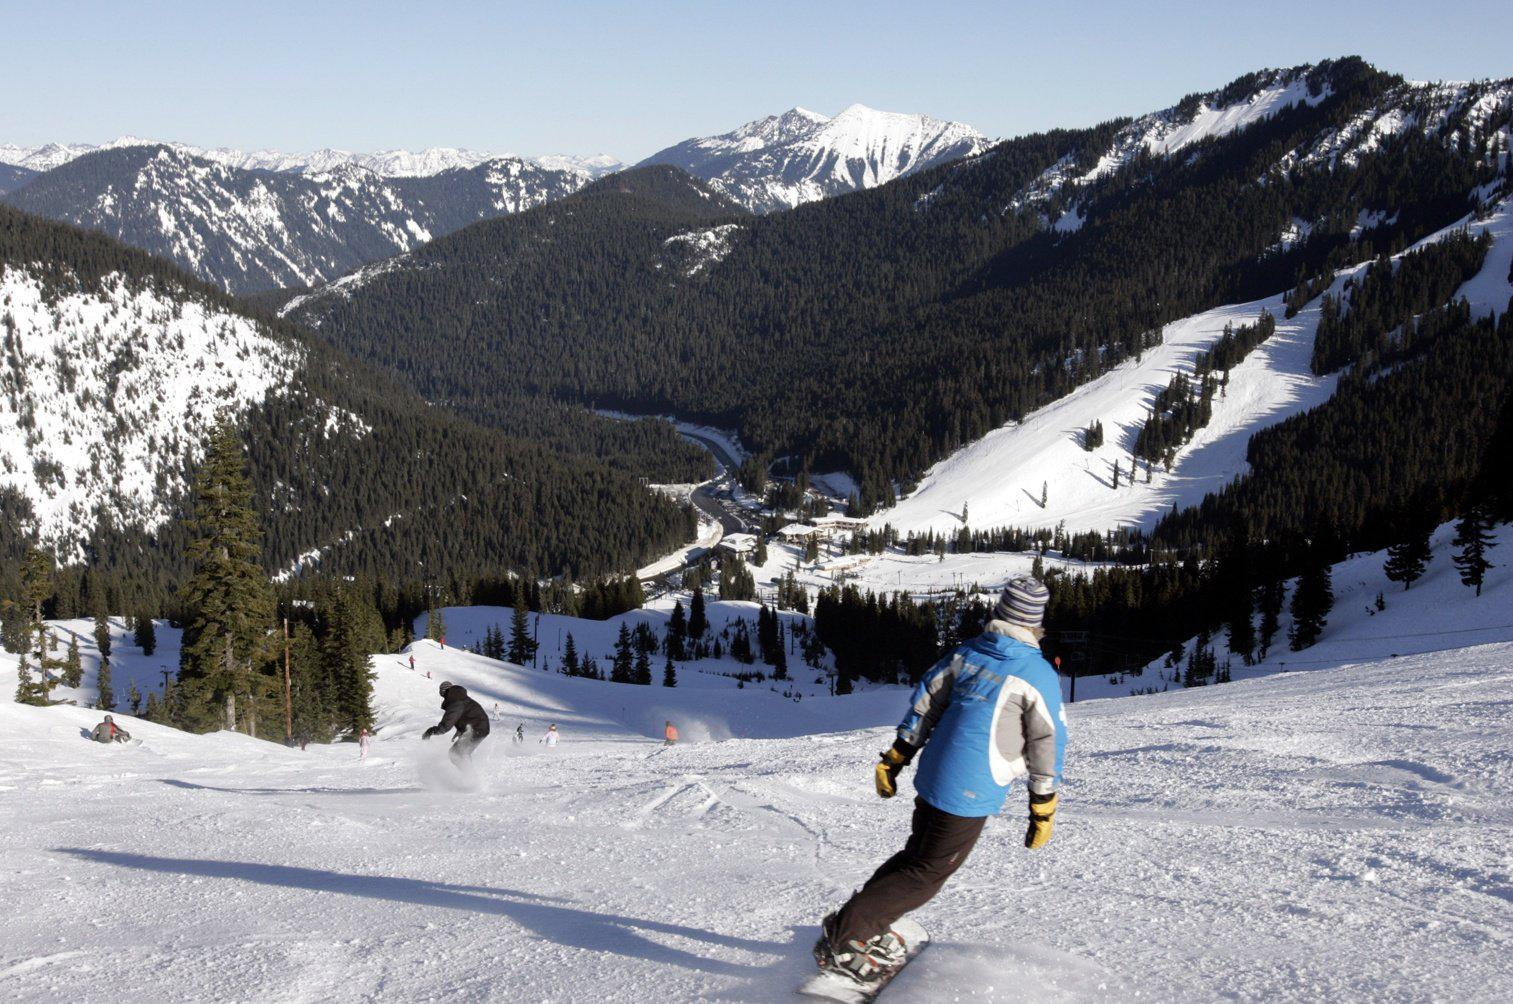 northwest ski areas part of major resort sale | the spokesman-review